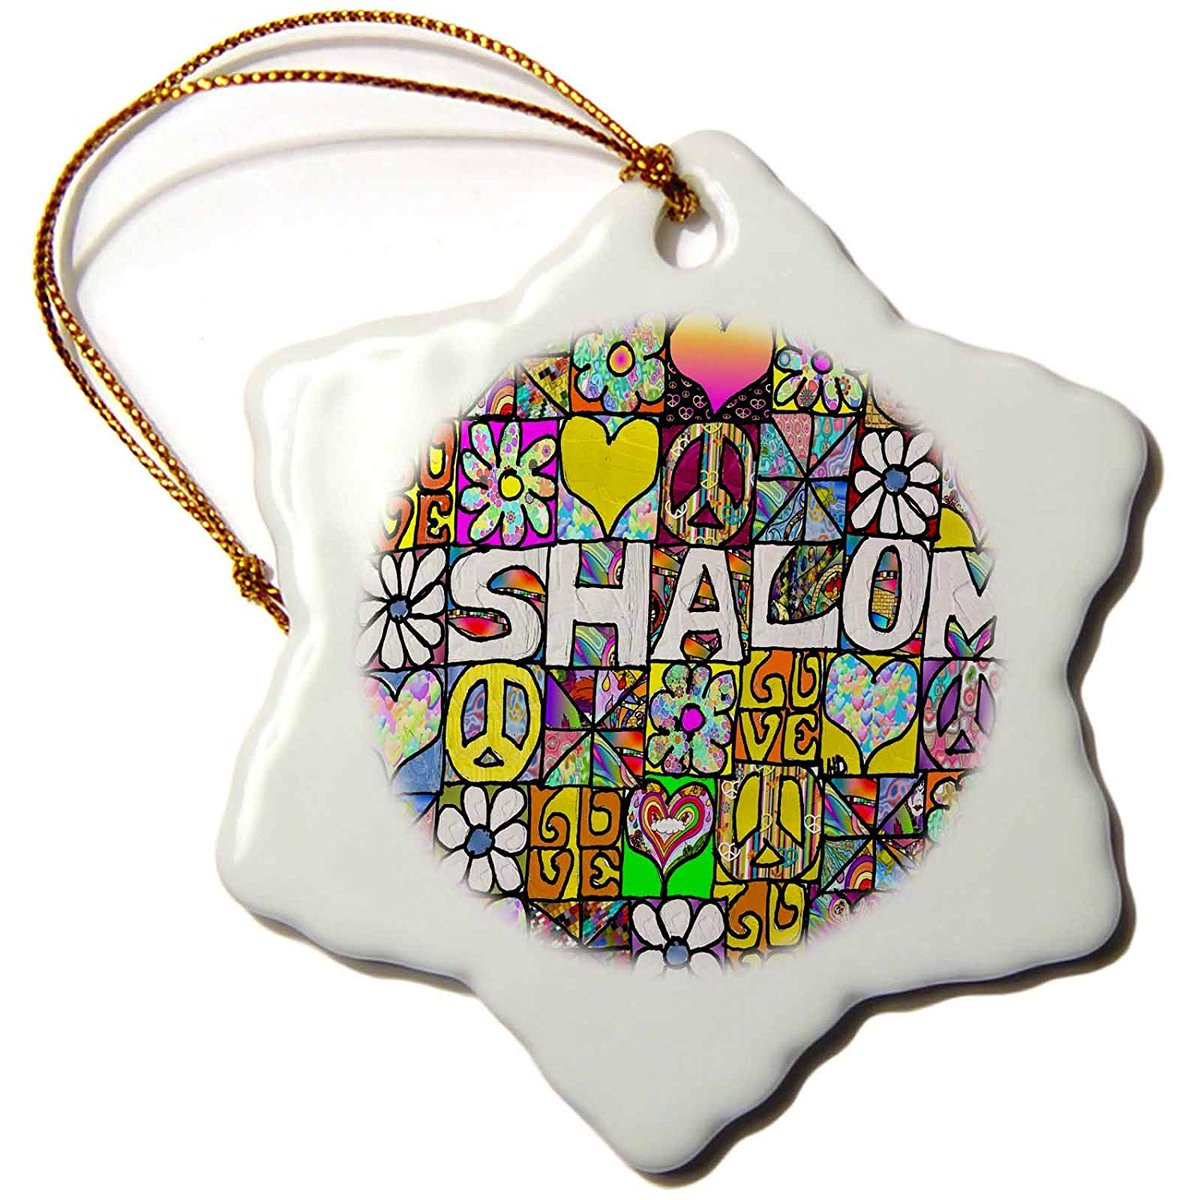 🌸✌️☮🌼❤️💮🌸✌️☮🌼❤️💮Retro 60s #Psychedelic #Shalom Love Peace Symbol #Art Print - 3 inch #Snowflake #Star Porcelain #Ornament #Christmas #Hanukkah #Gifts #amazonhttps://amzn.to/2OaEVjj